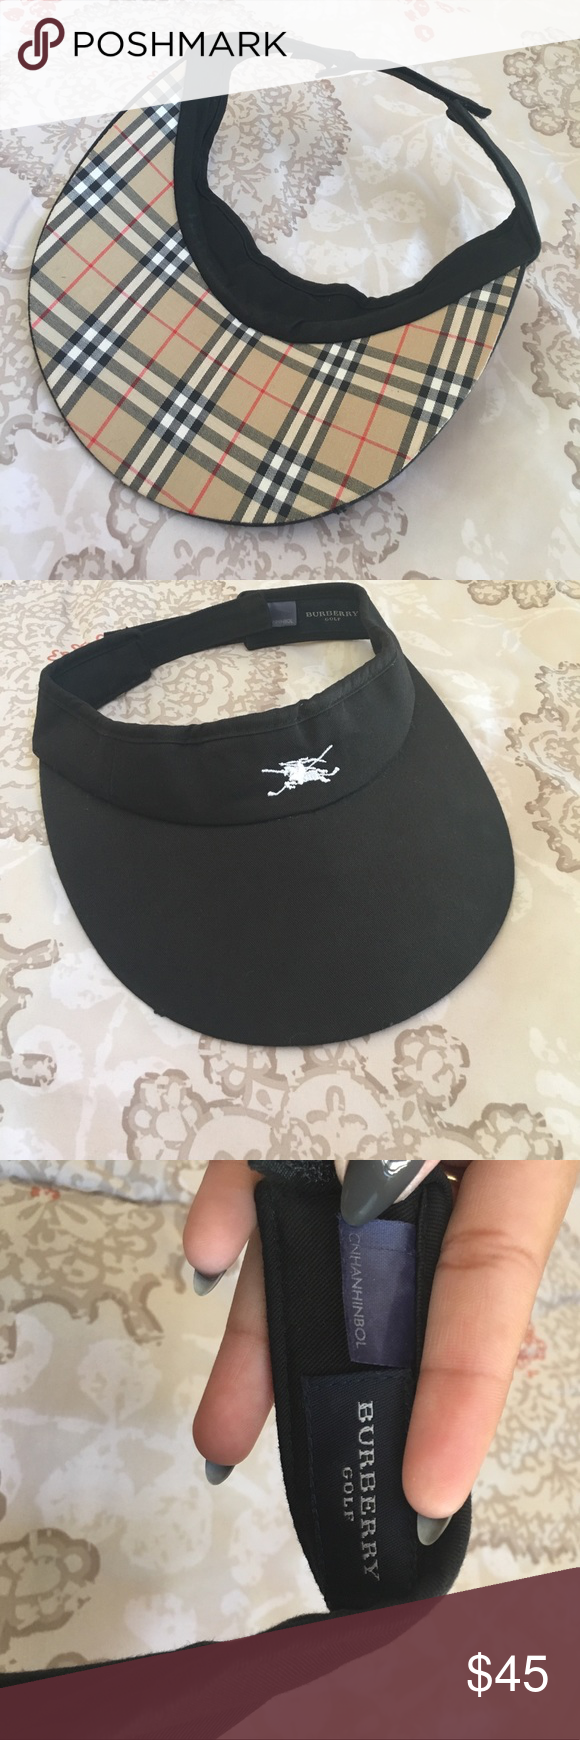 Burberry golf hat Black Burberry visor hat with adjustable strap! Has small  defect on last picture! OVERALL Cute hat for shade! Burberry Other f1c5524a8e7b